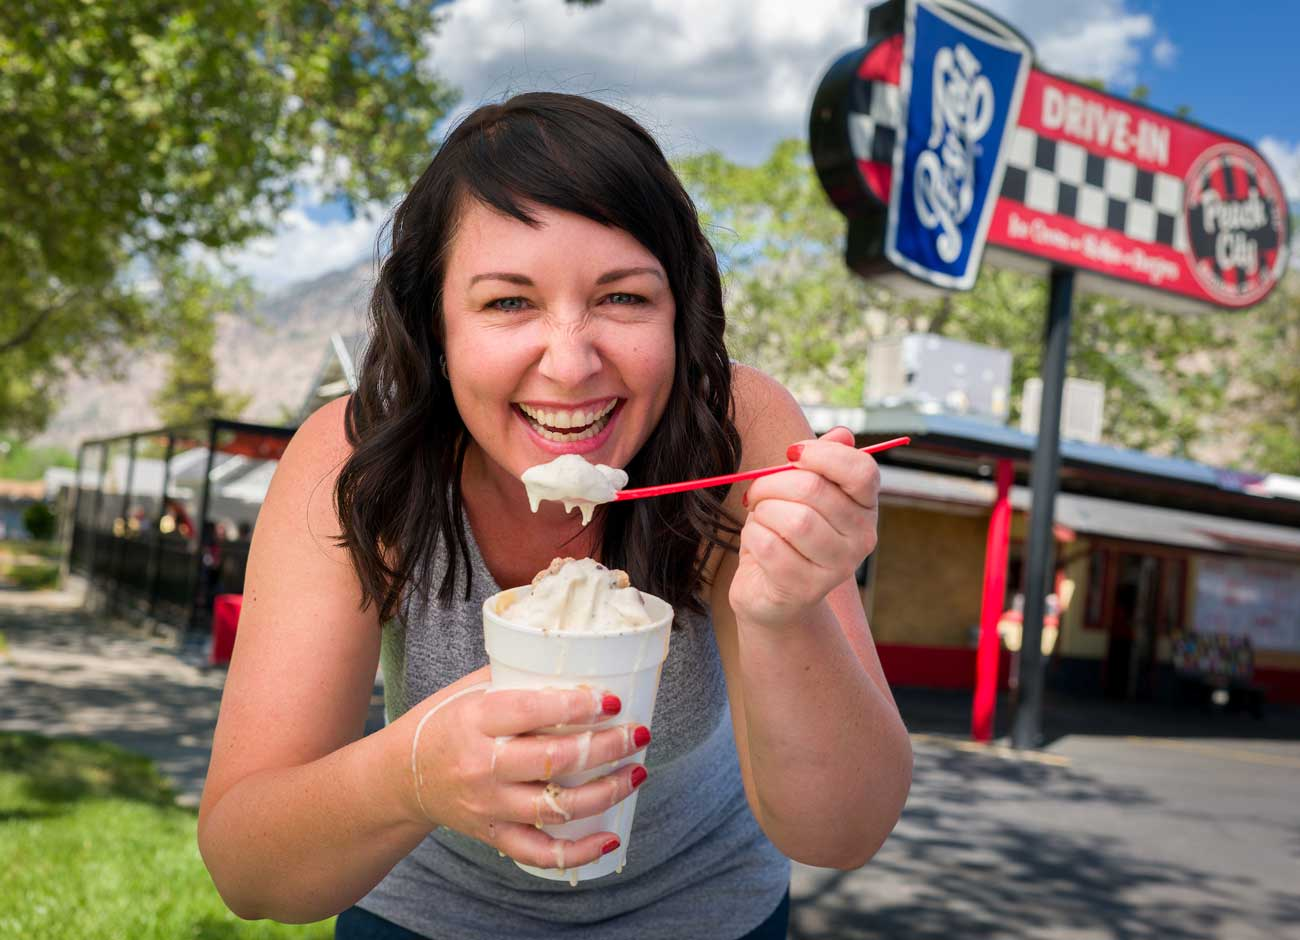 a woman with black hair grins while holding a melting milkshake and eating it with a spoon. the drips fall down her hands. she stands in front of a drive in.